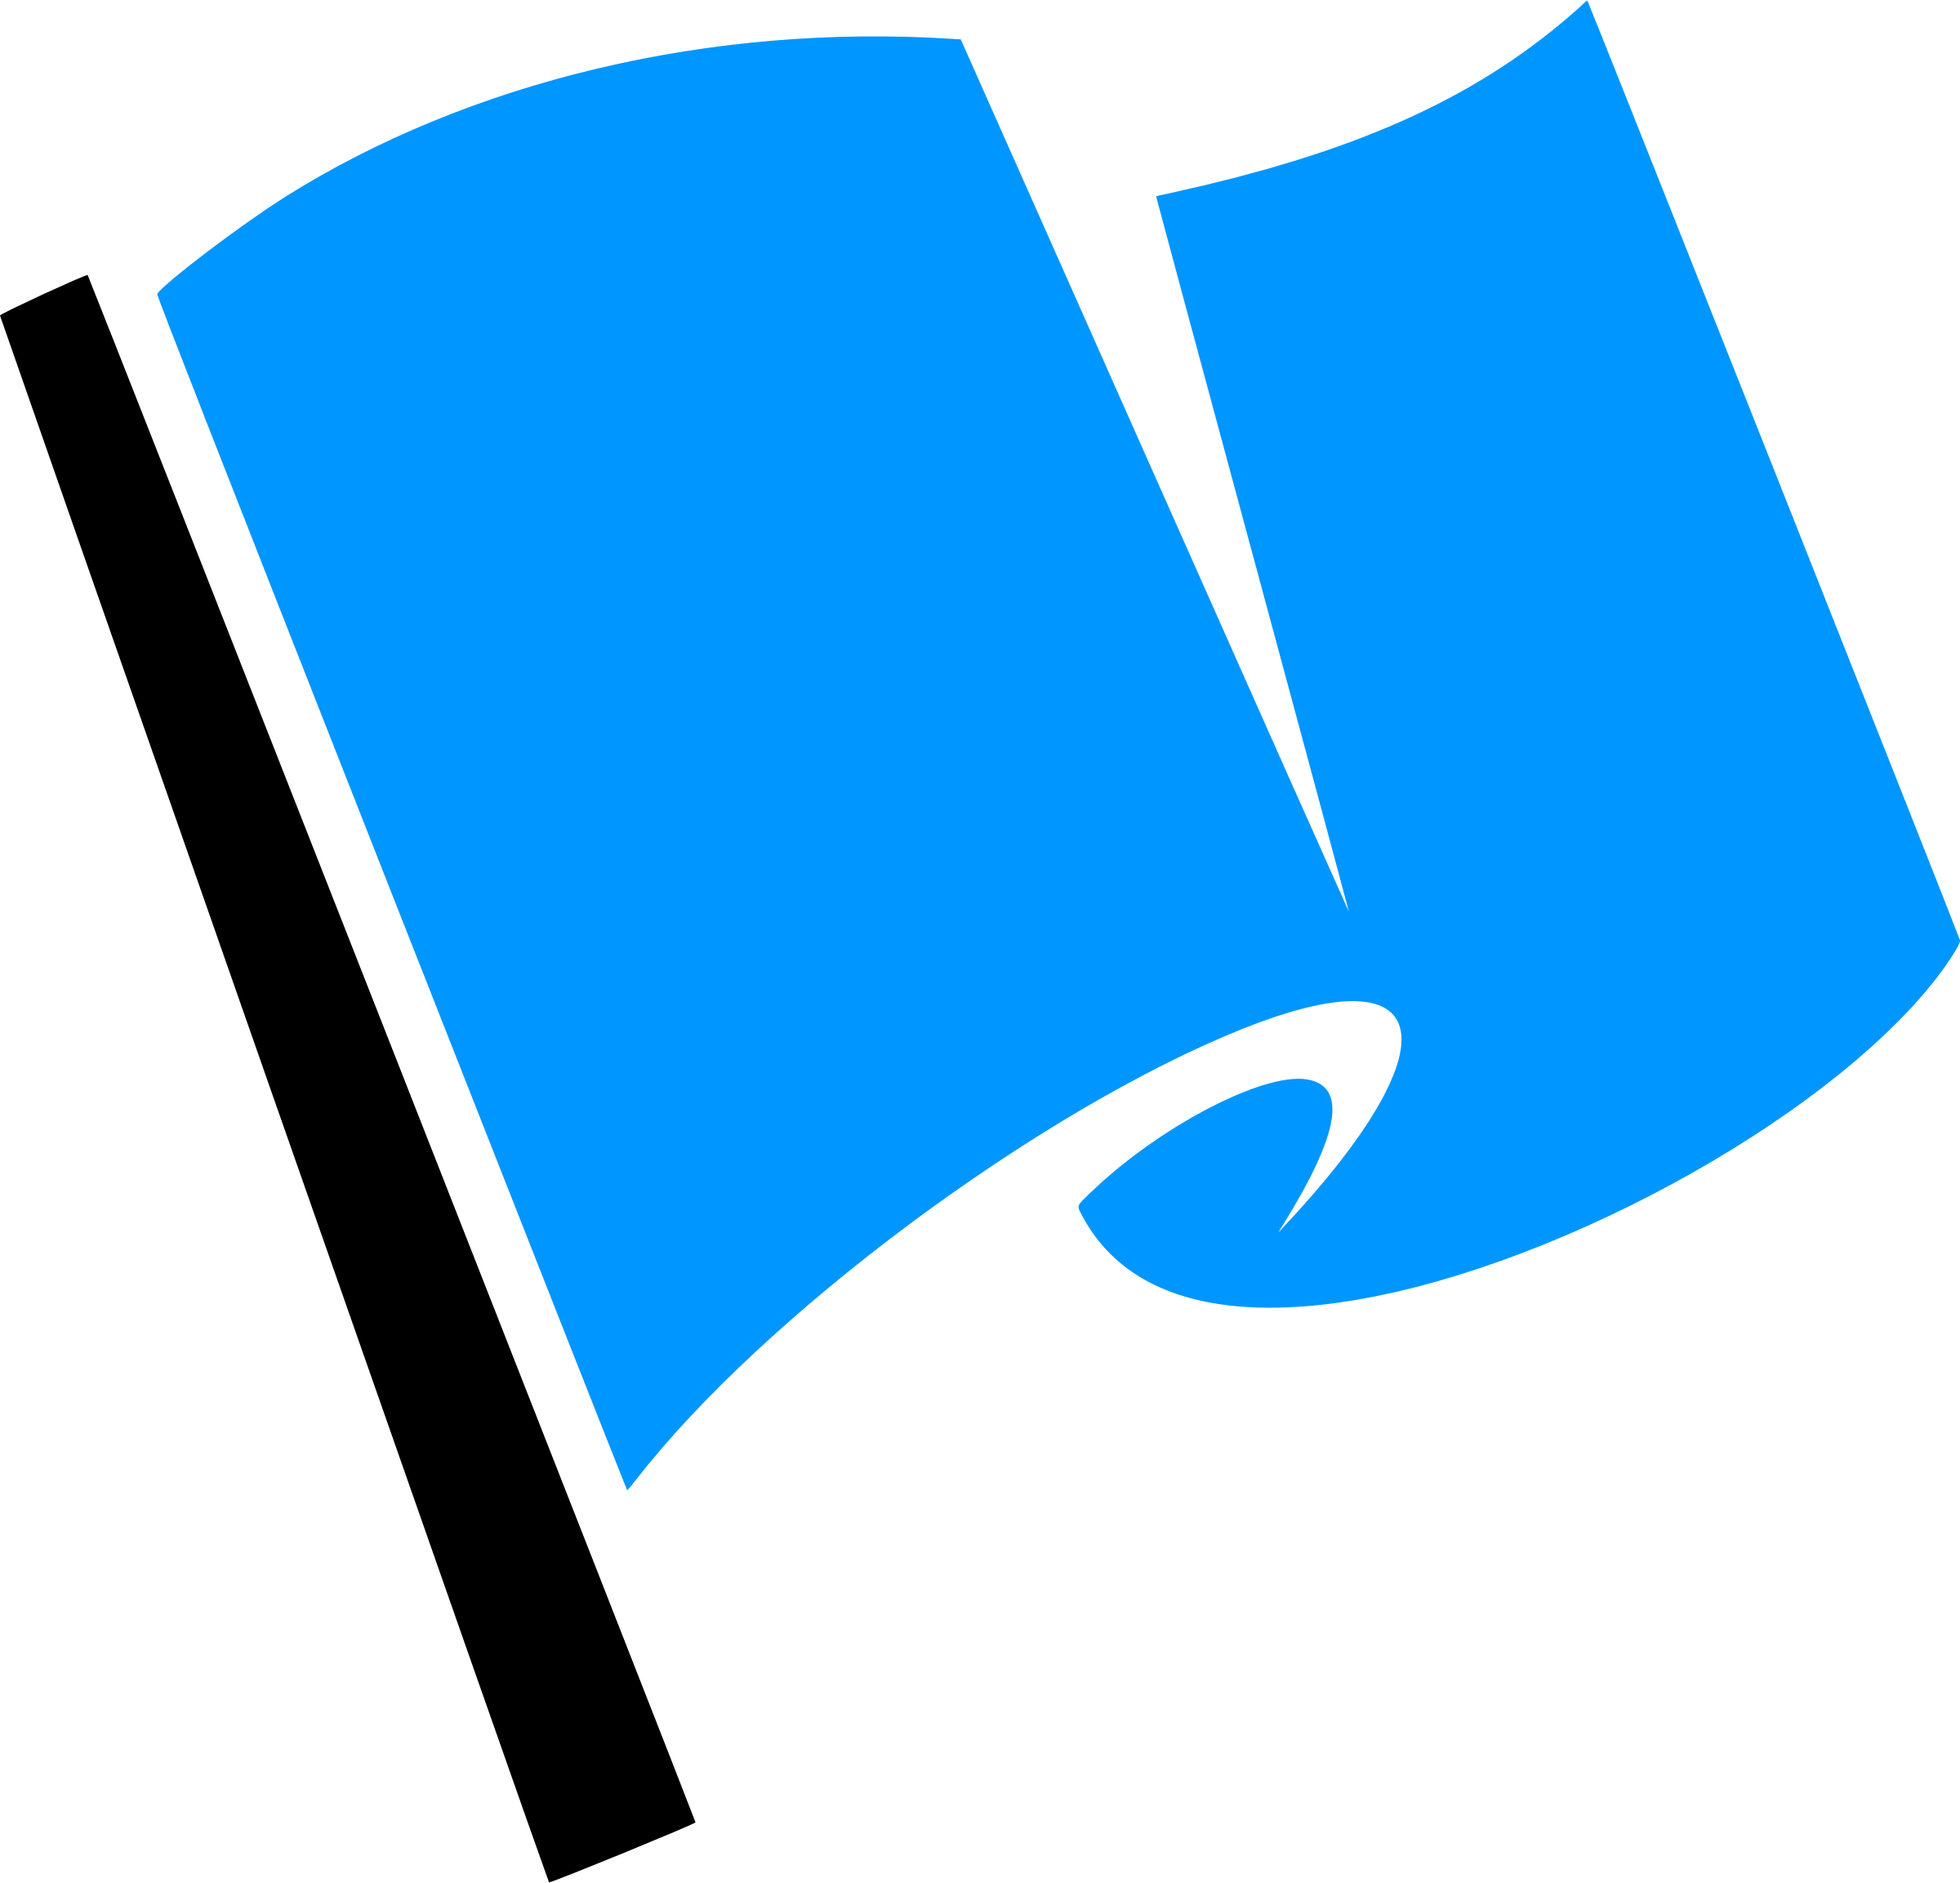 Hirnlichtspiele's blue flag vectorized by Firkin